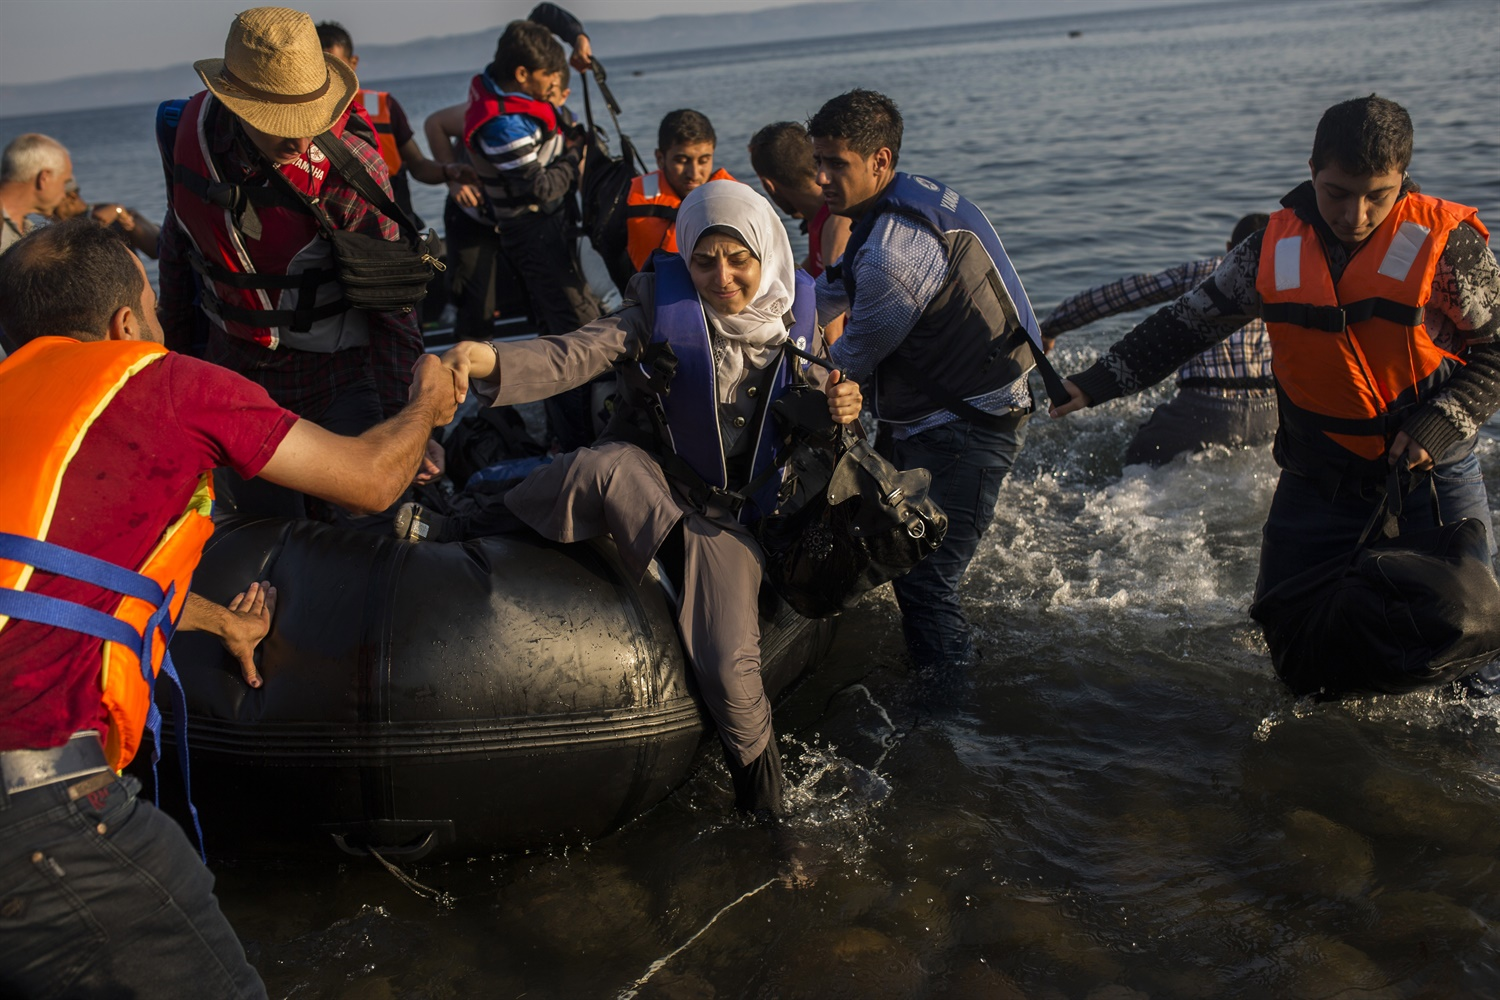 Migrants from Syria, Afghanistan arrive on Lesbos. July 15. AP Photo, Santi Palacios